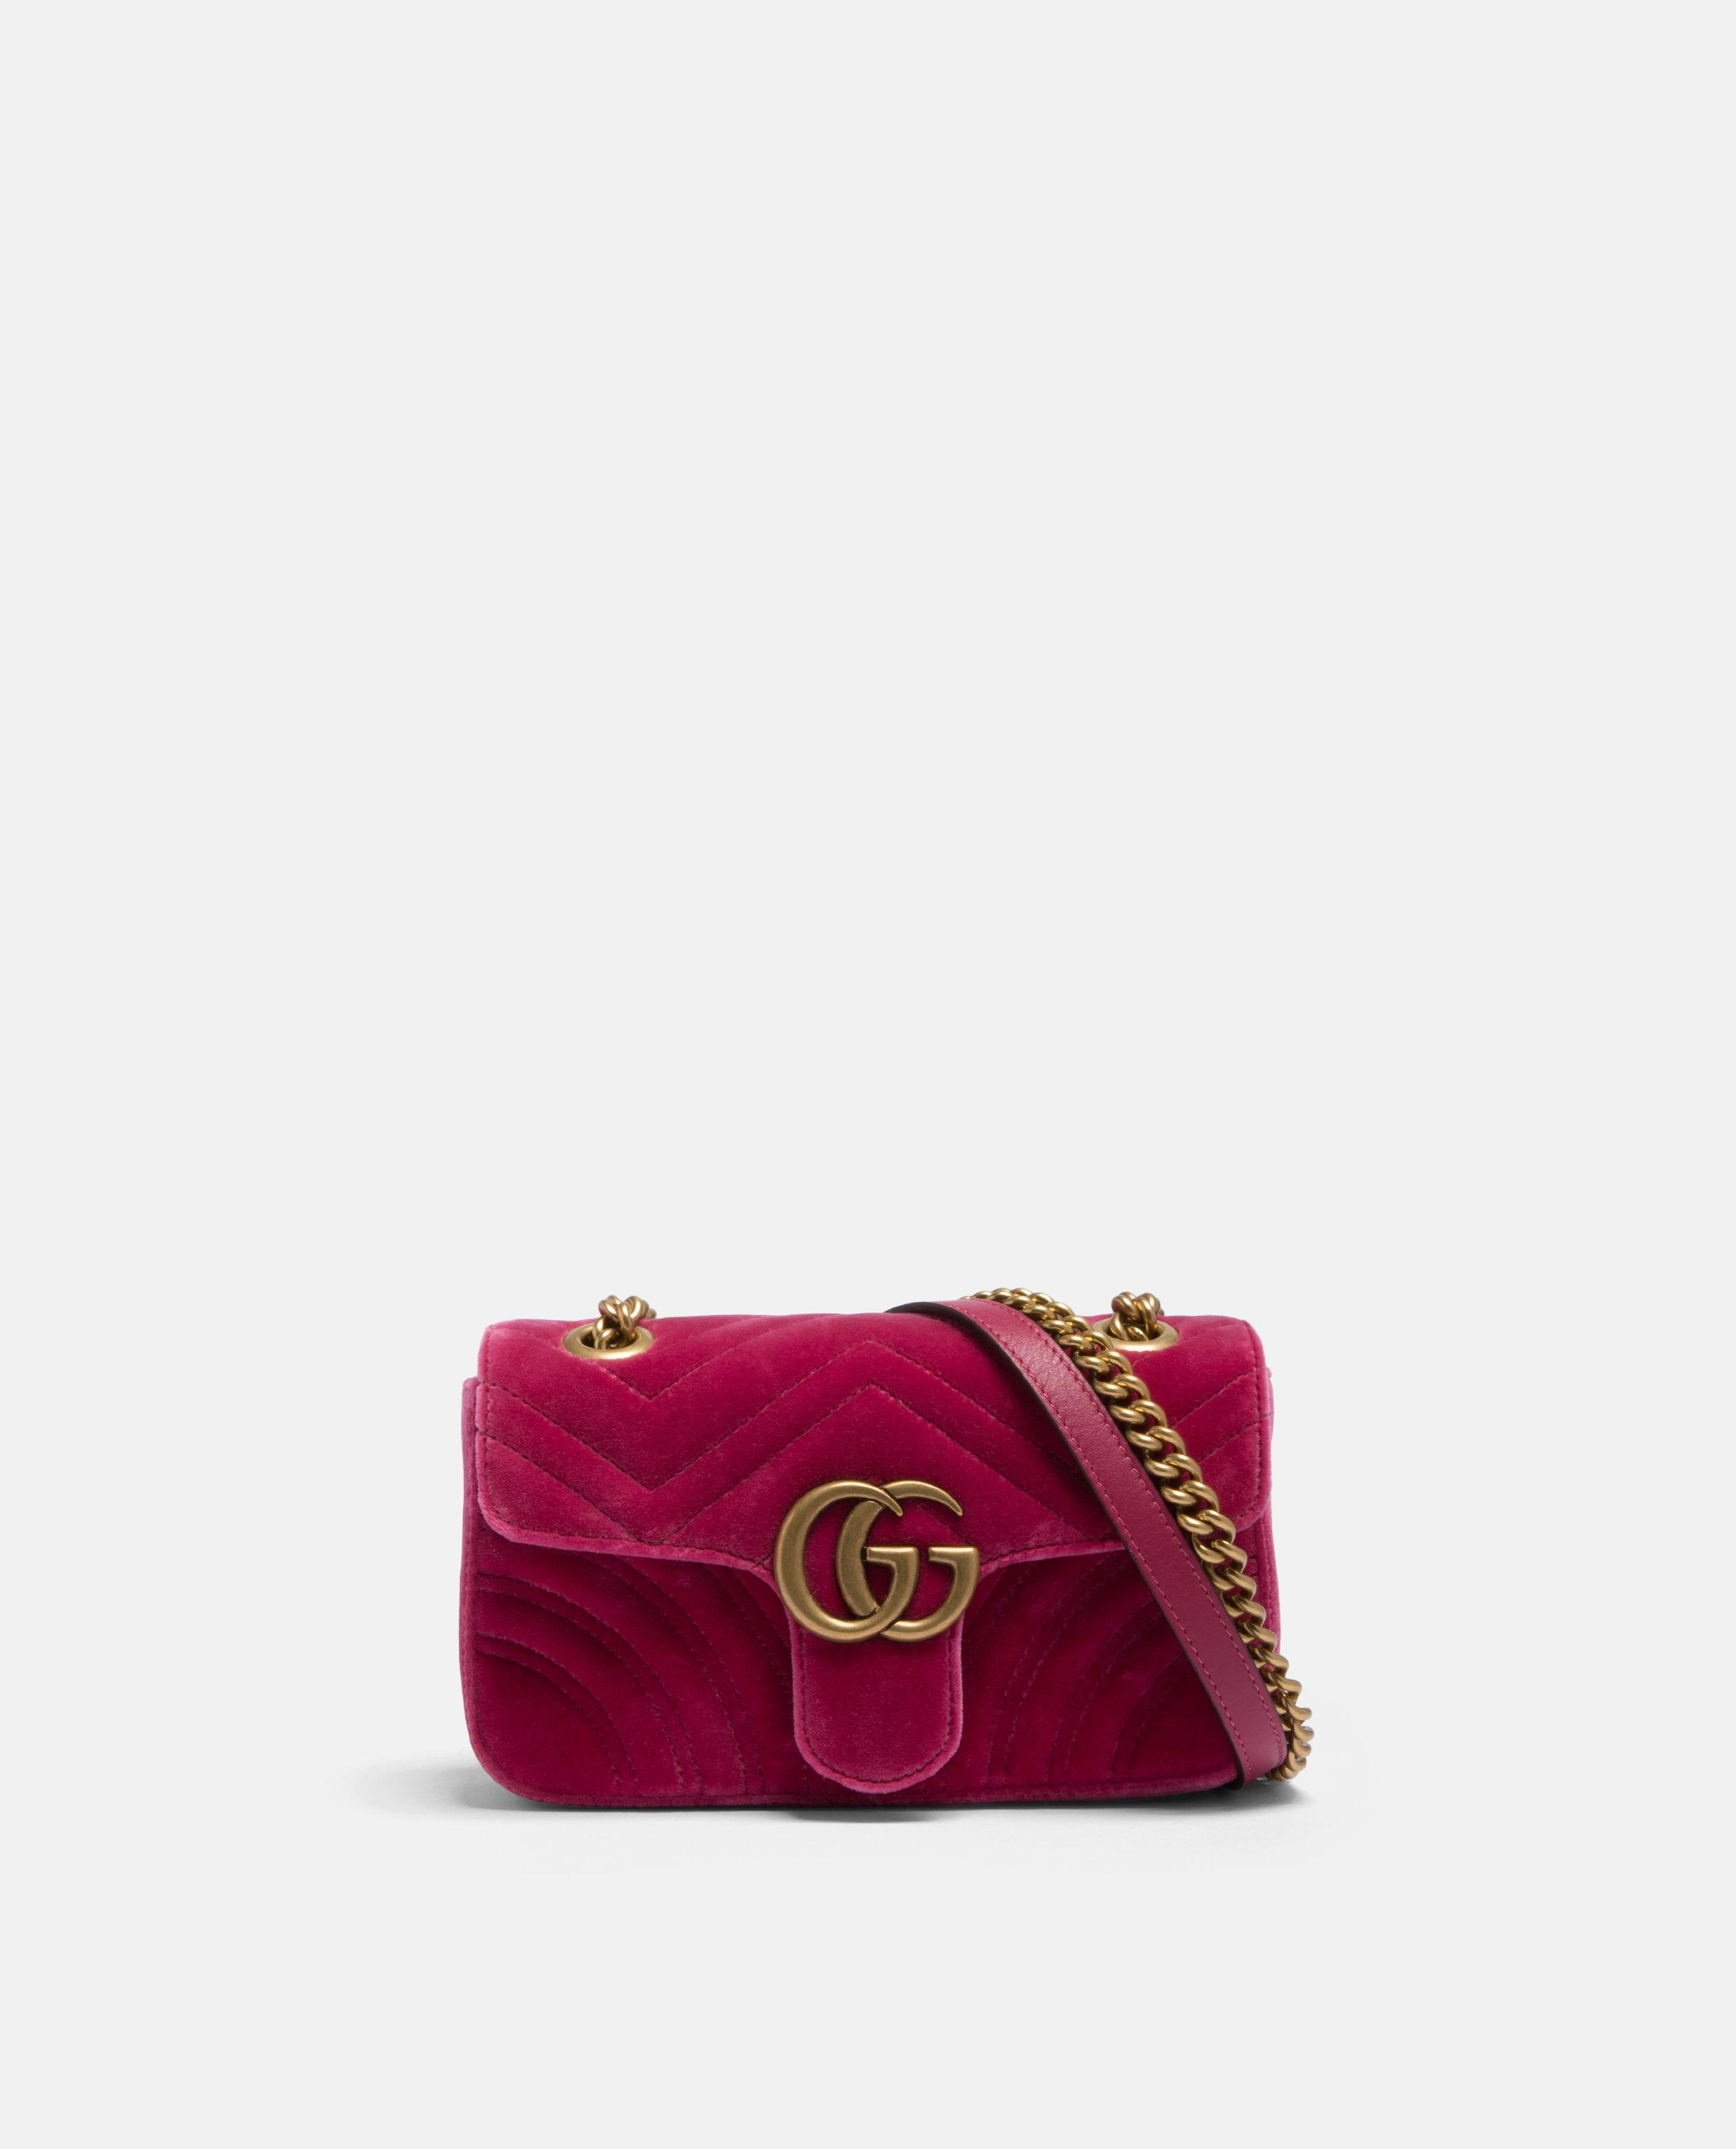 880b08d0e00 Gucci Mini GG Marmont Bag in Pink - Lyst